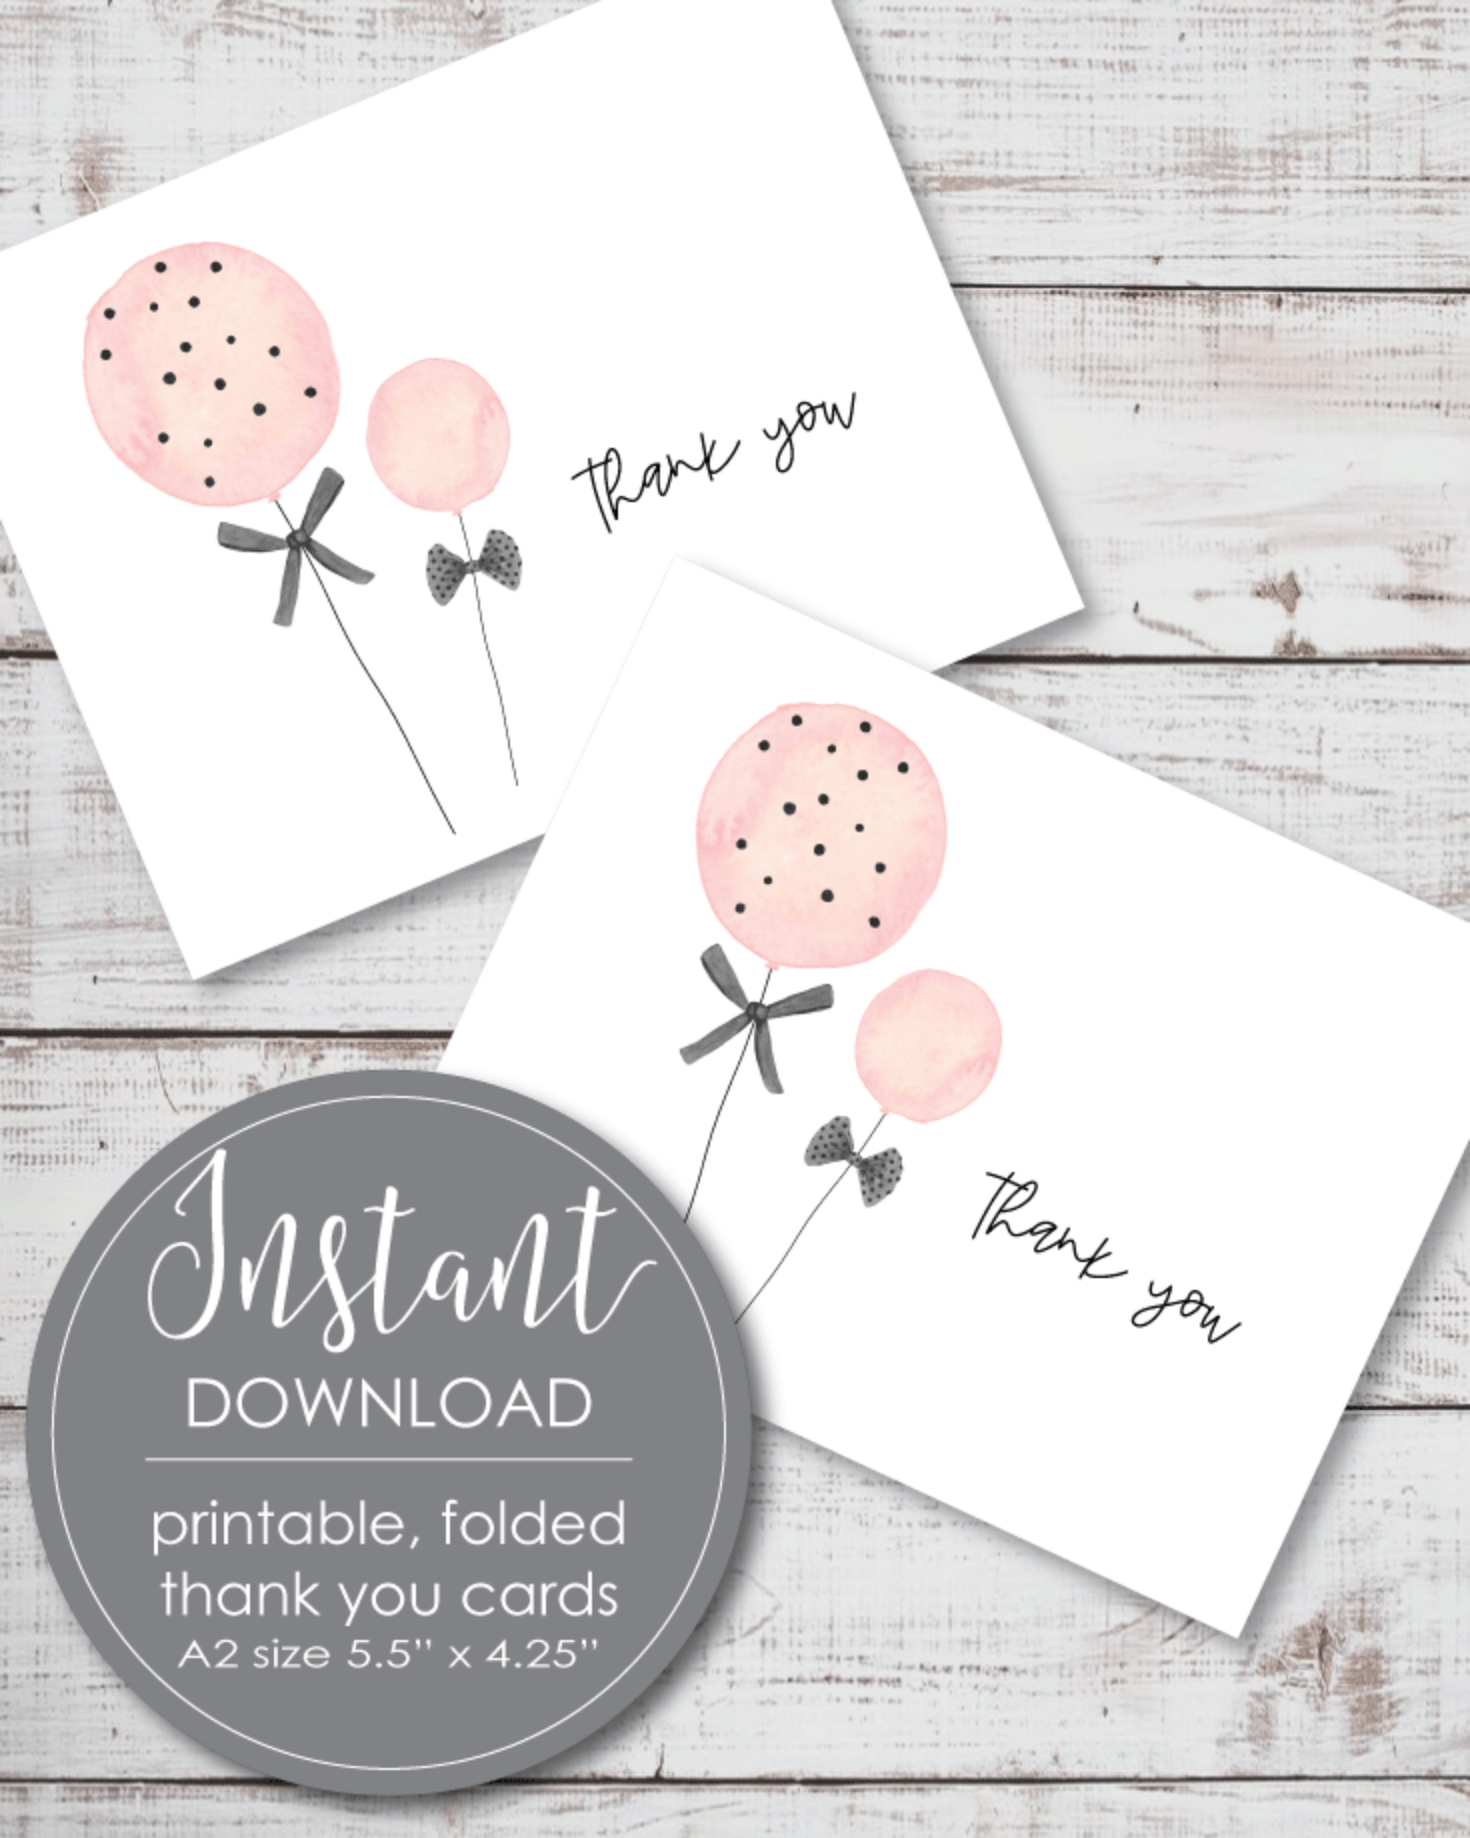 Printable Thank You Card - Pink Balloon Theme - 5.5 x 4.25""